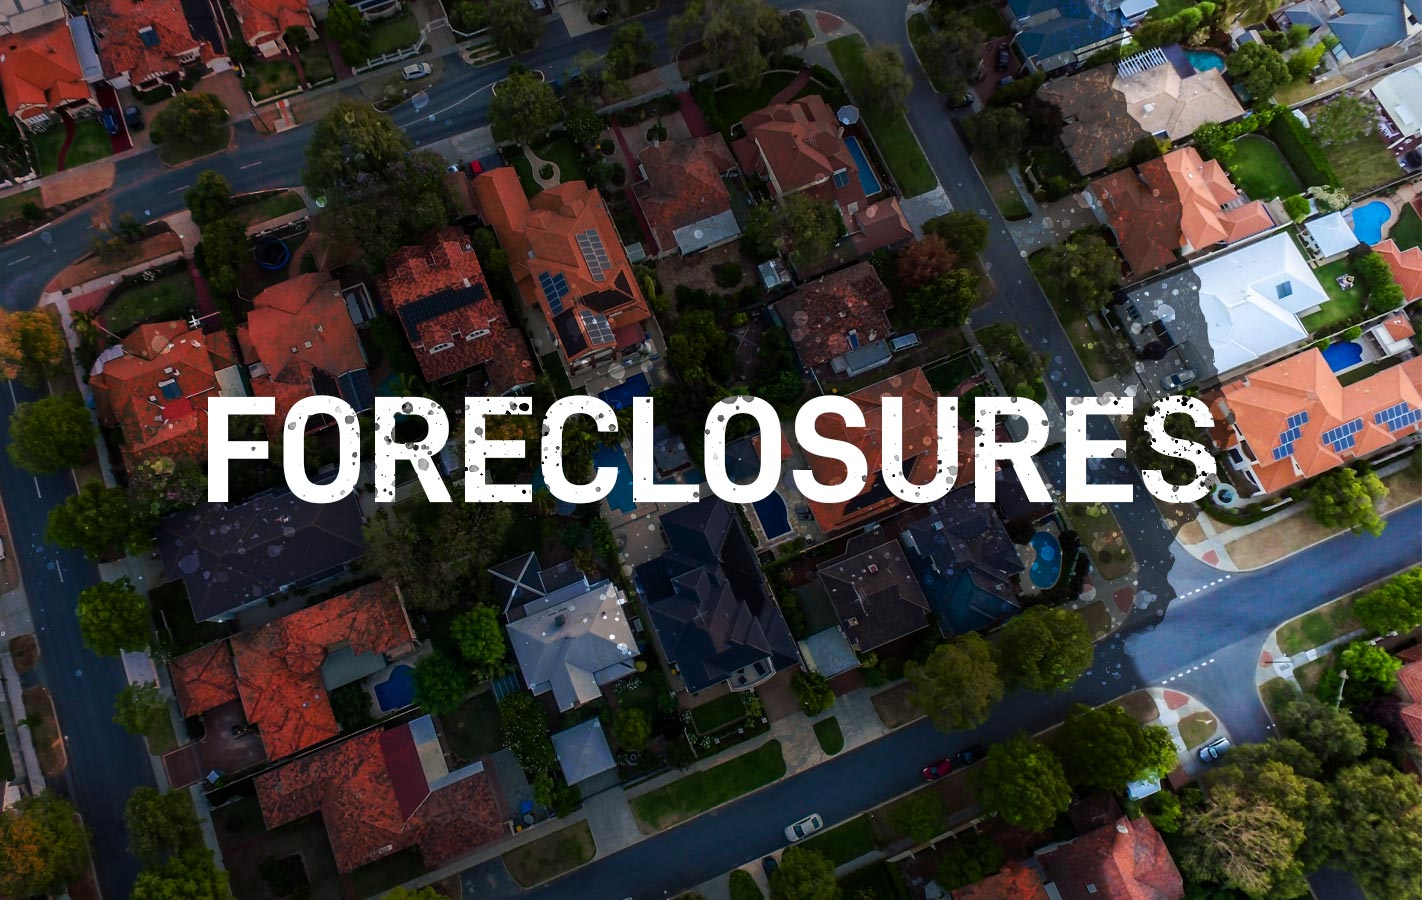 Mortgage Firms preparing for a tidal wave of foreclosures